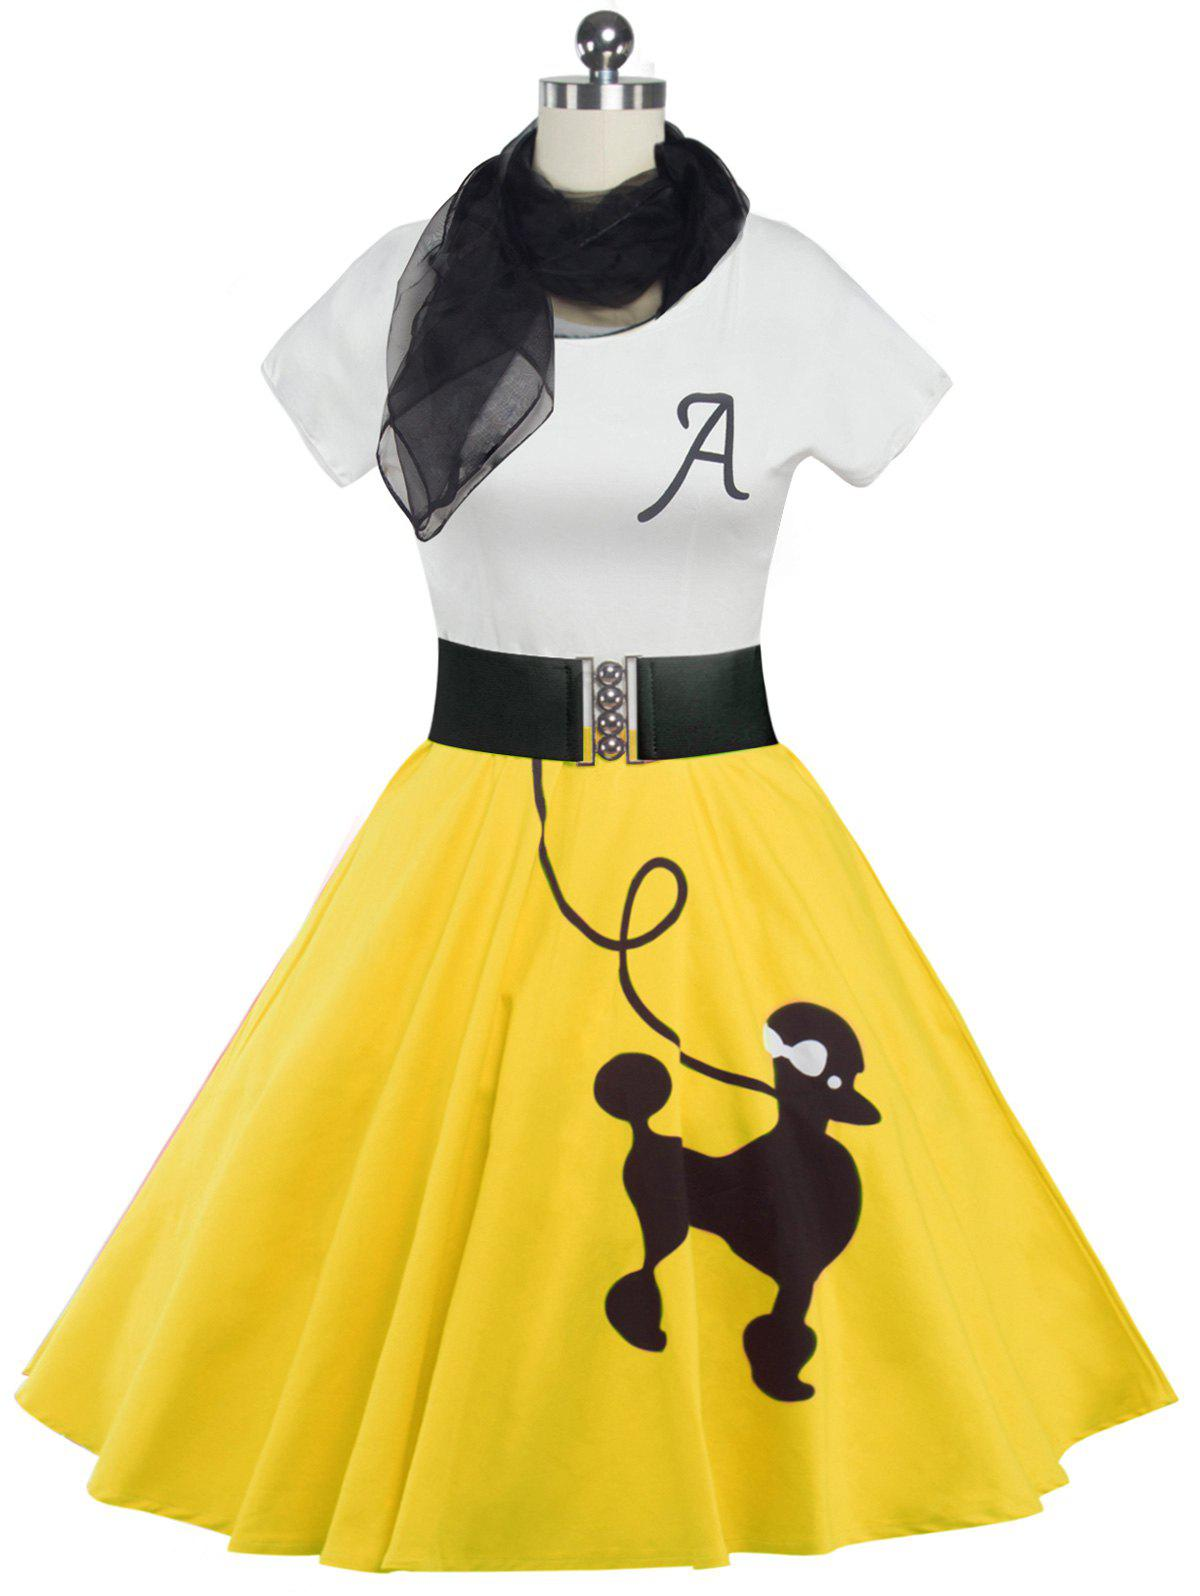 Retro Poodle Print High Waist Skater Dress - YELLOW 2XL